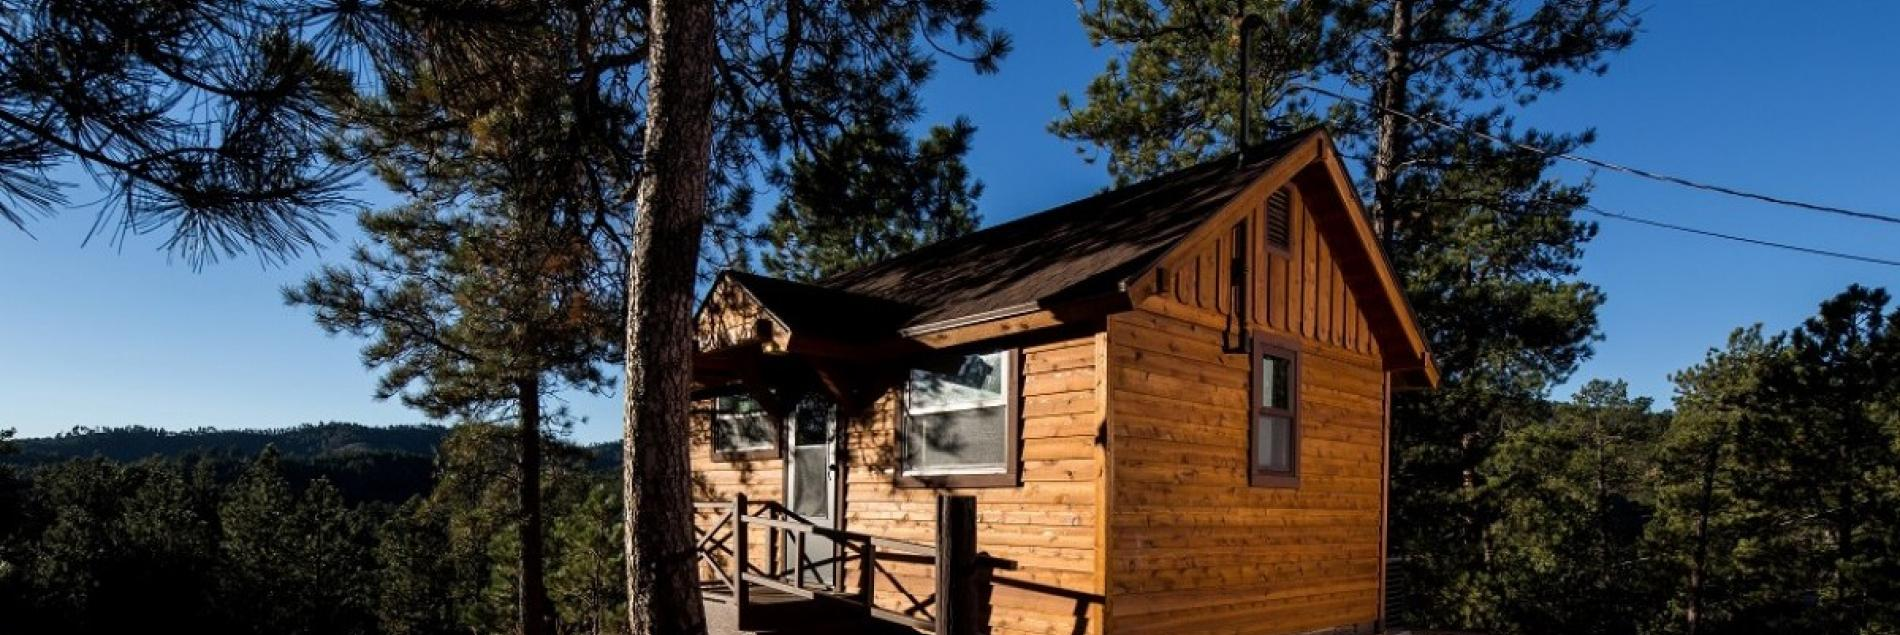 Legion Lake Lodge at Custer State Park Resort